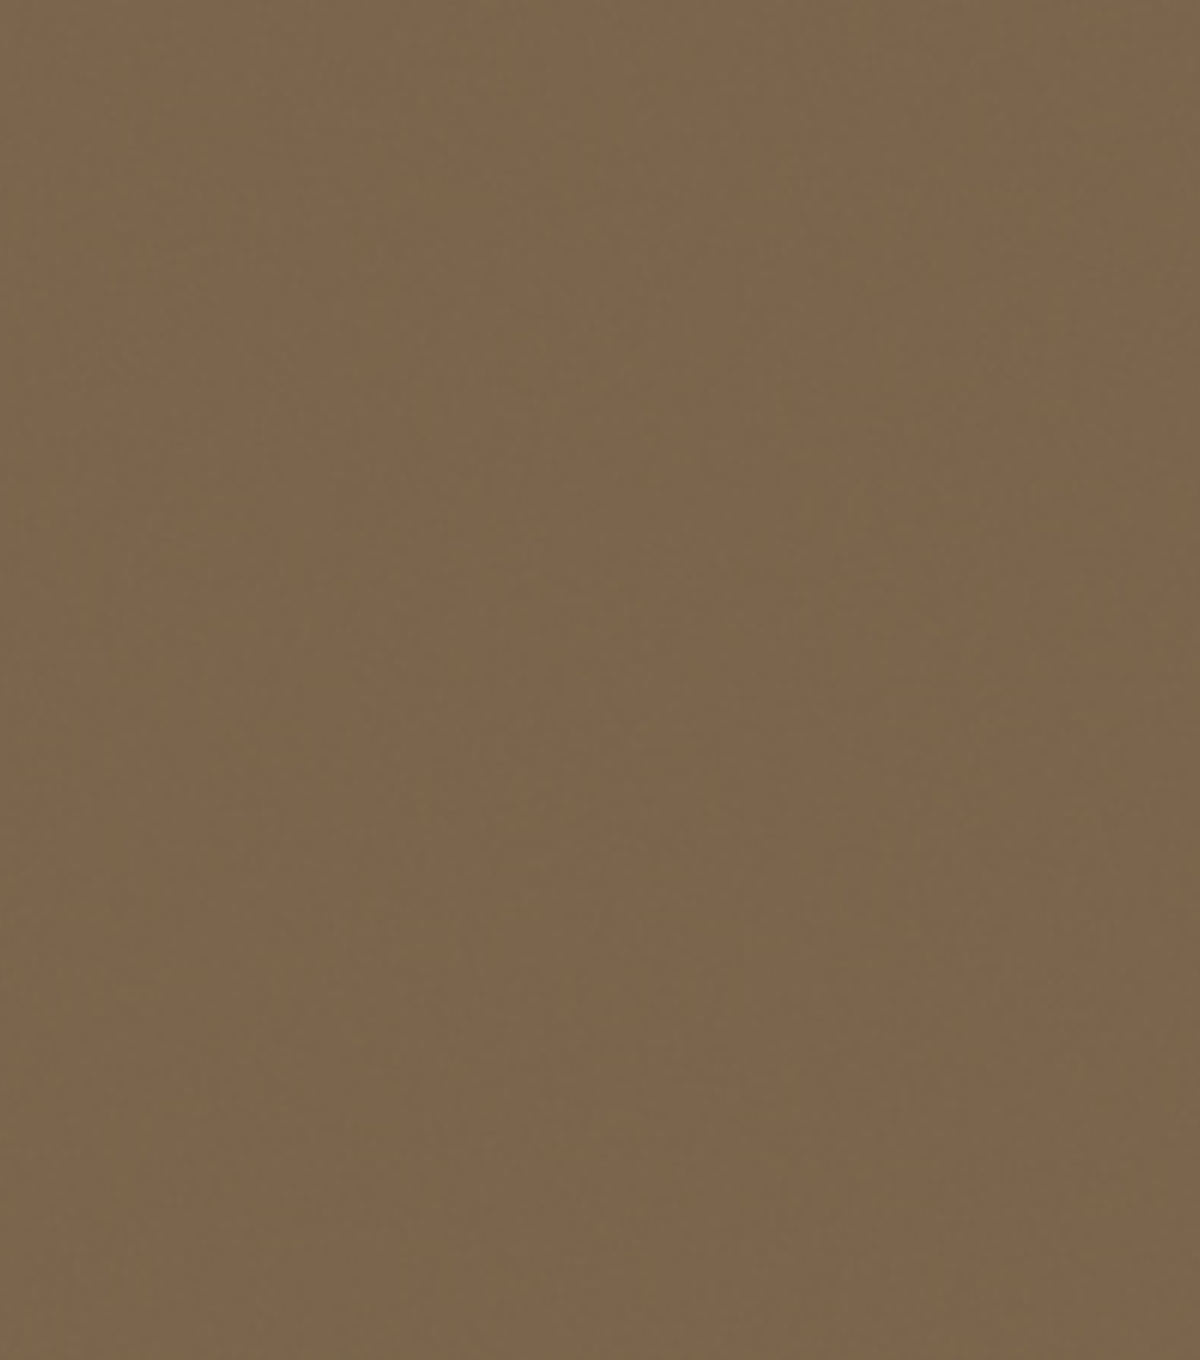 Delta Ceramcoat Acrylic Paint 2 oz, Walnut